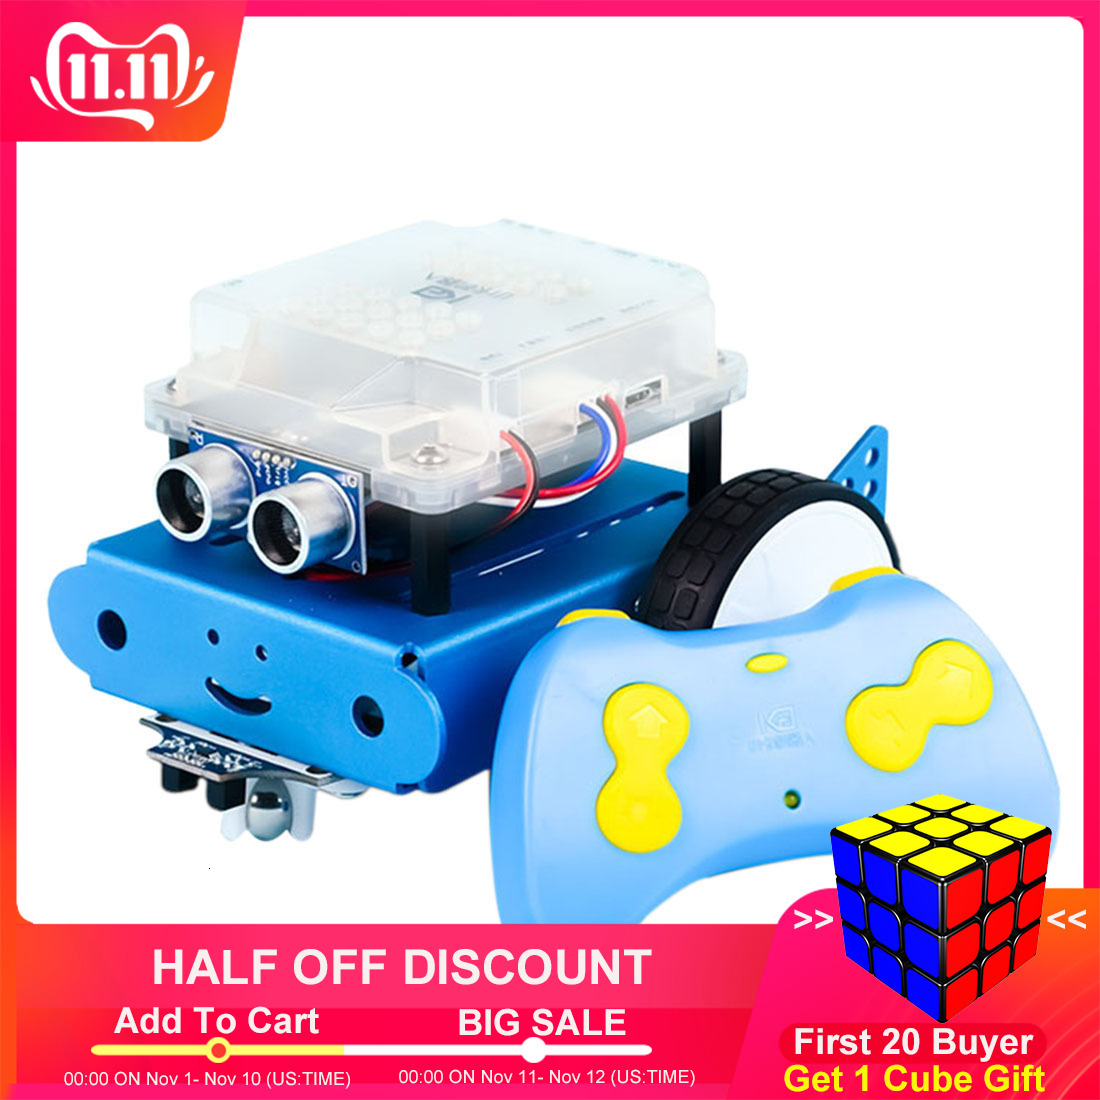 DIY Smart Robot Car Kit APP Control Programming Obstacle Avoidance Line-Tracking Ultrasonic Sensor - Blue